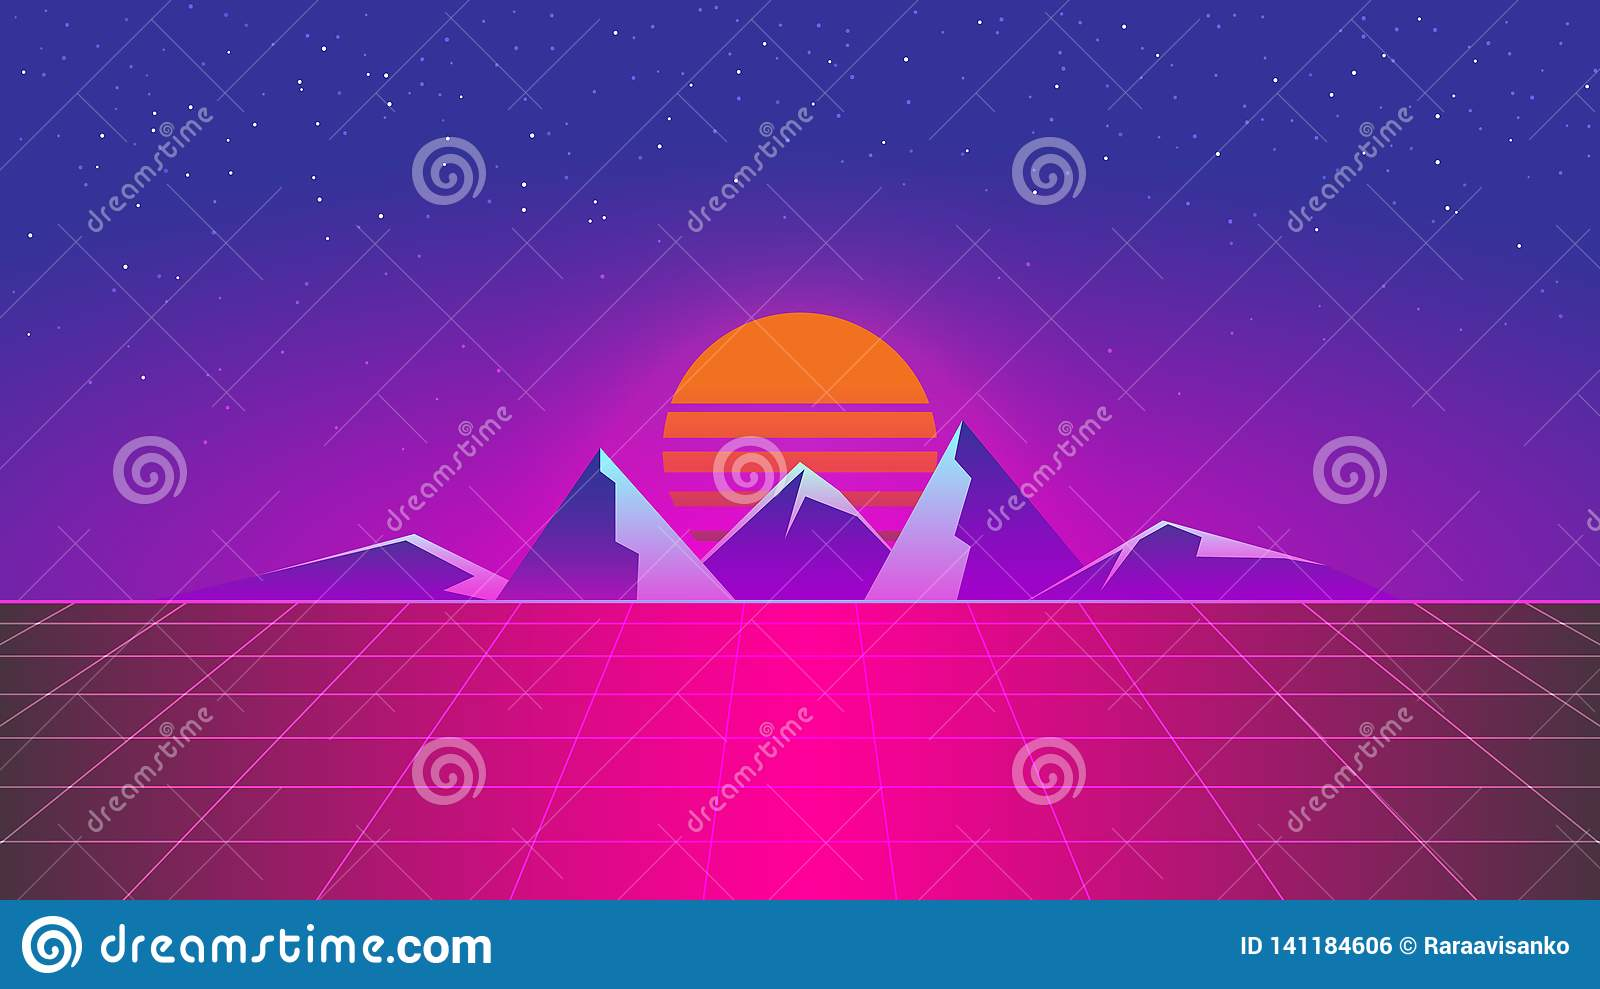 synthwave mountain neon colors sunset wallpaper retro wave computer geometric 141184606